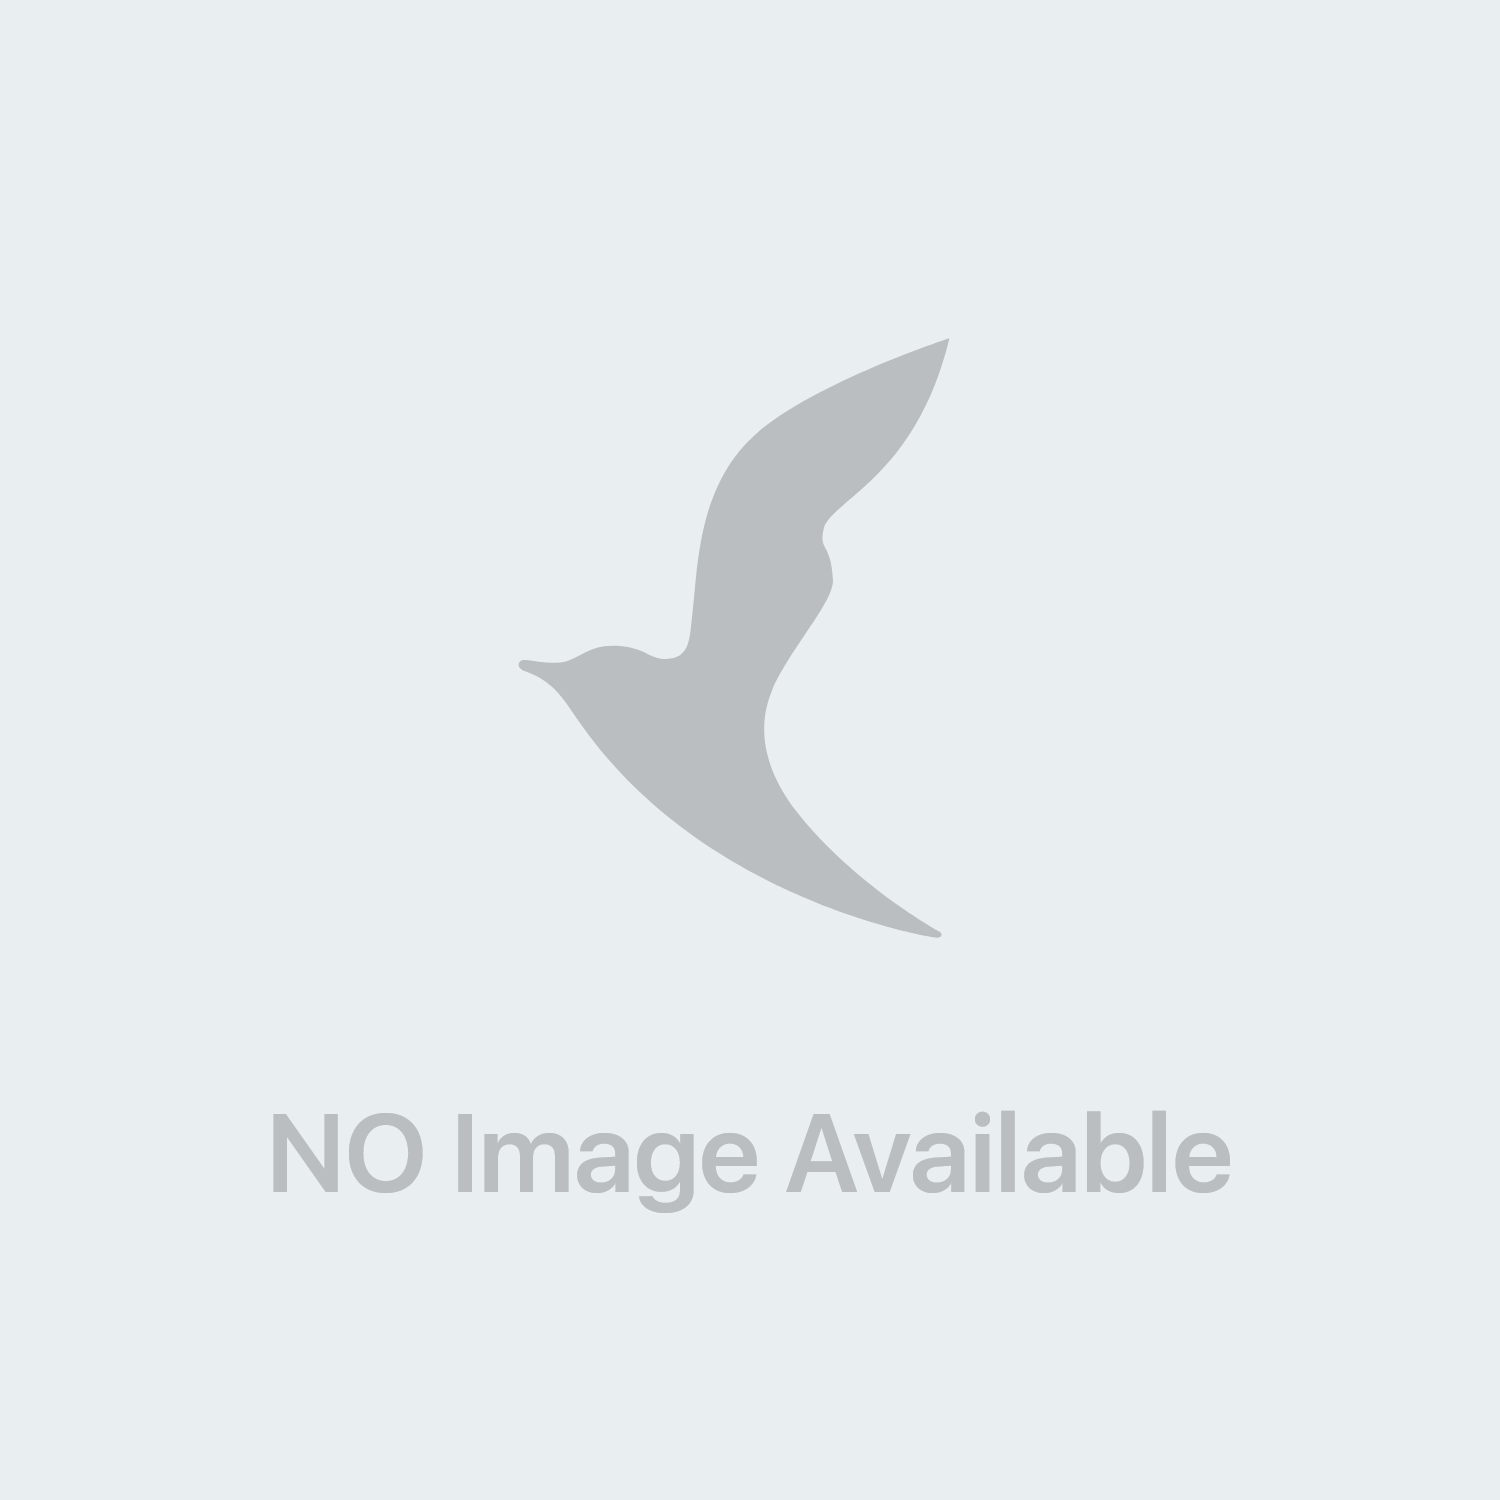 Bach Rescue Remedy Original Fiori Di Bach Gocce 20 Ml